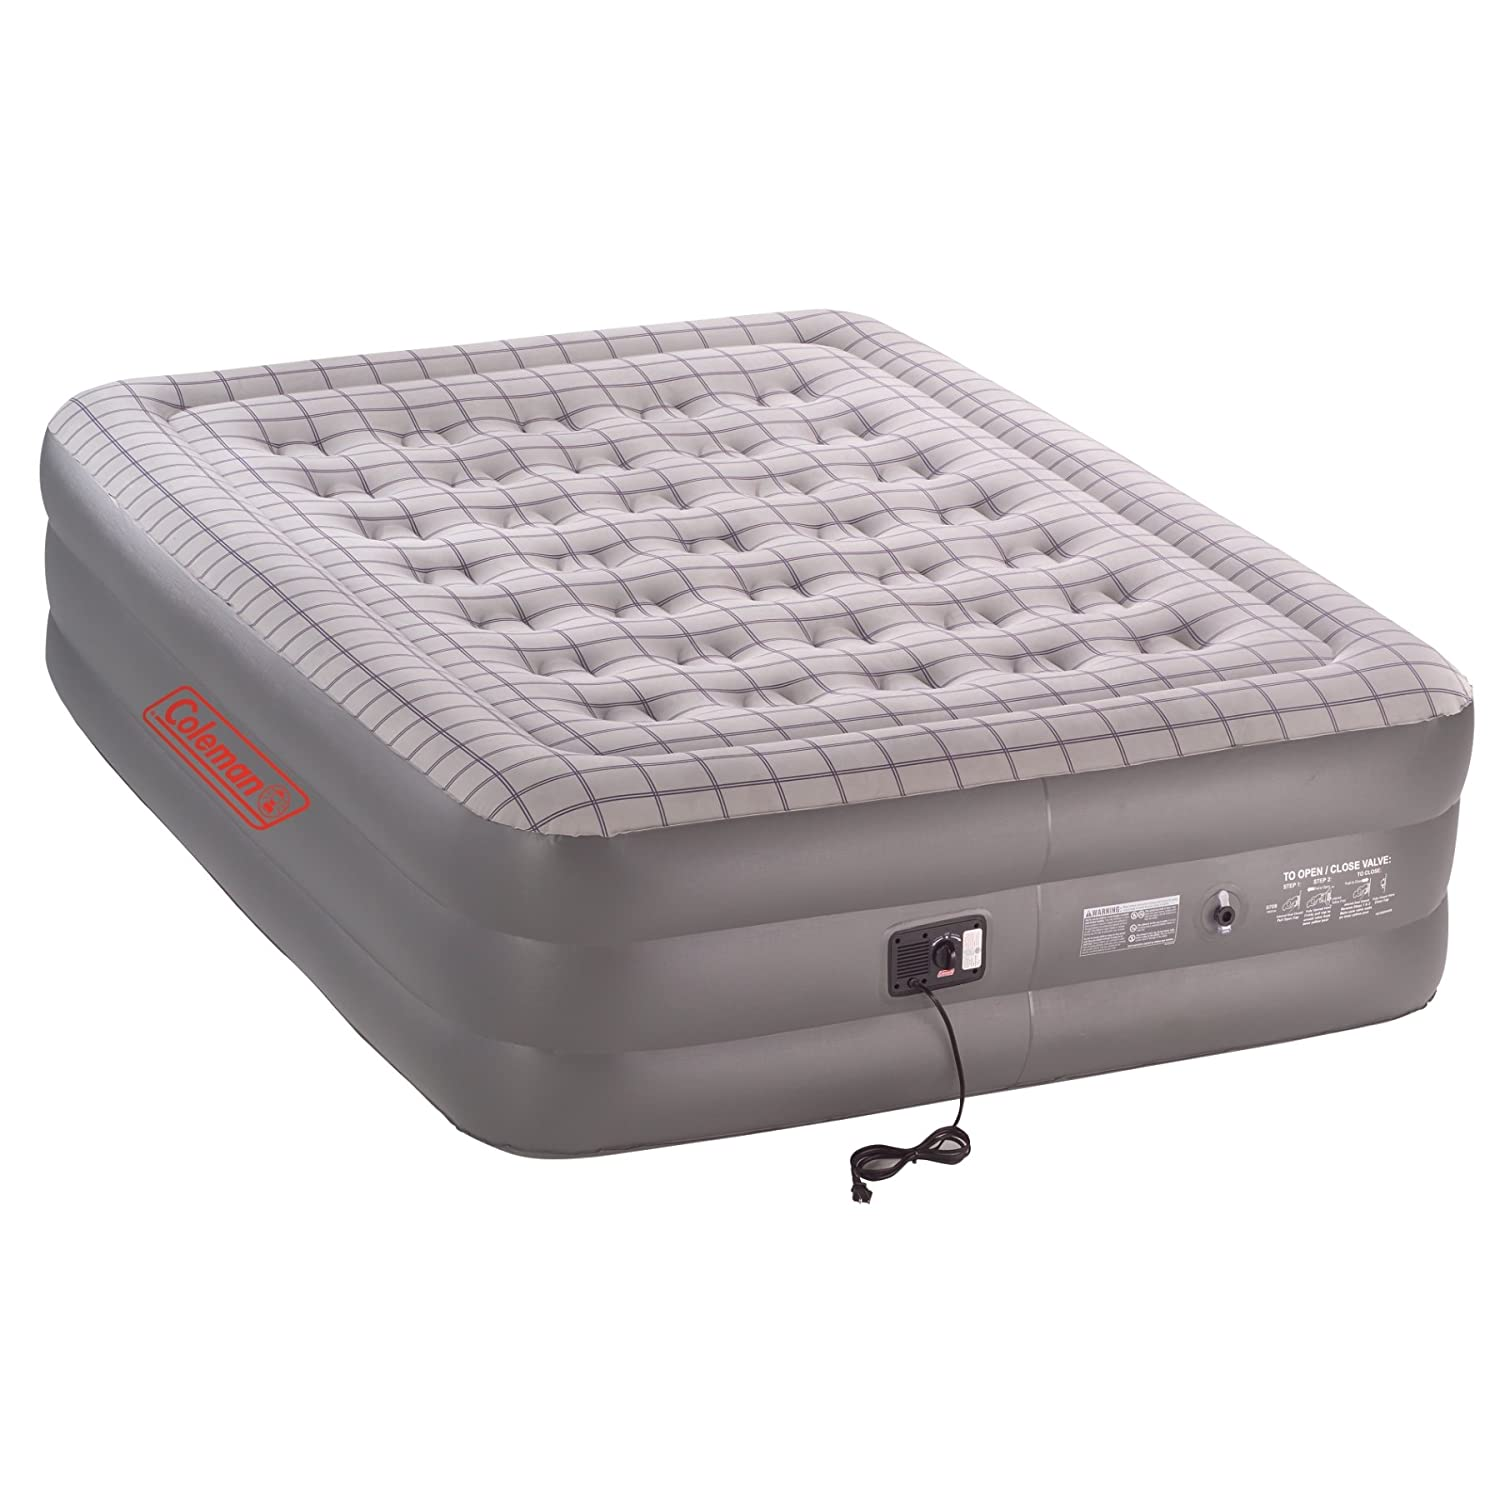 Air Mattress With Built In Pump Homelingo Com